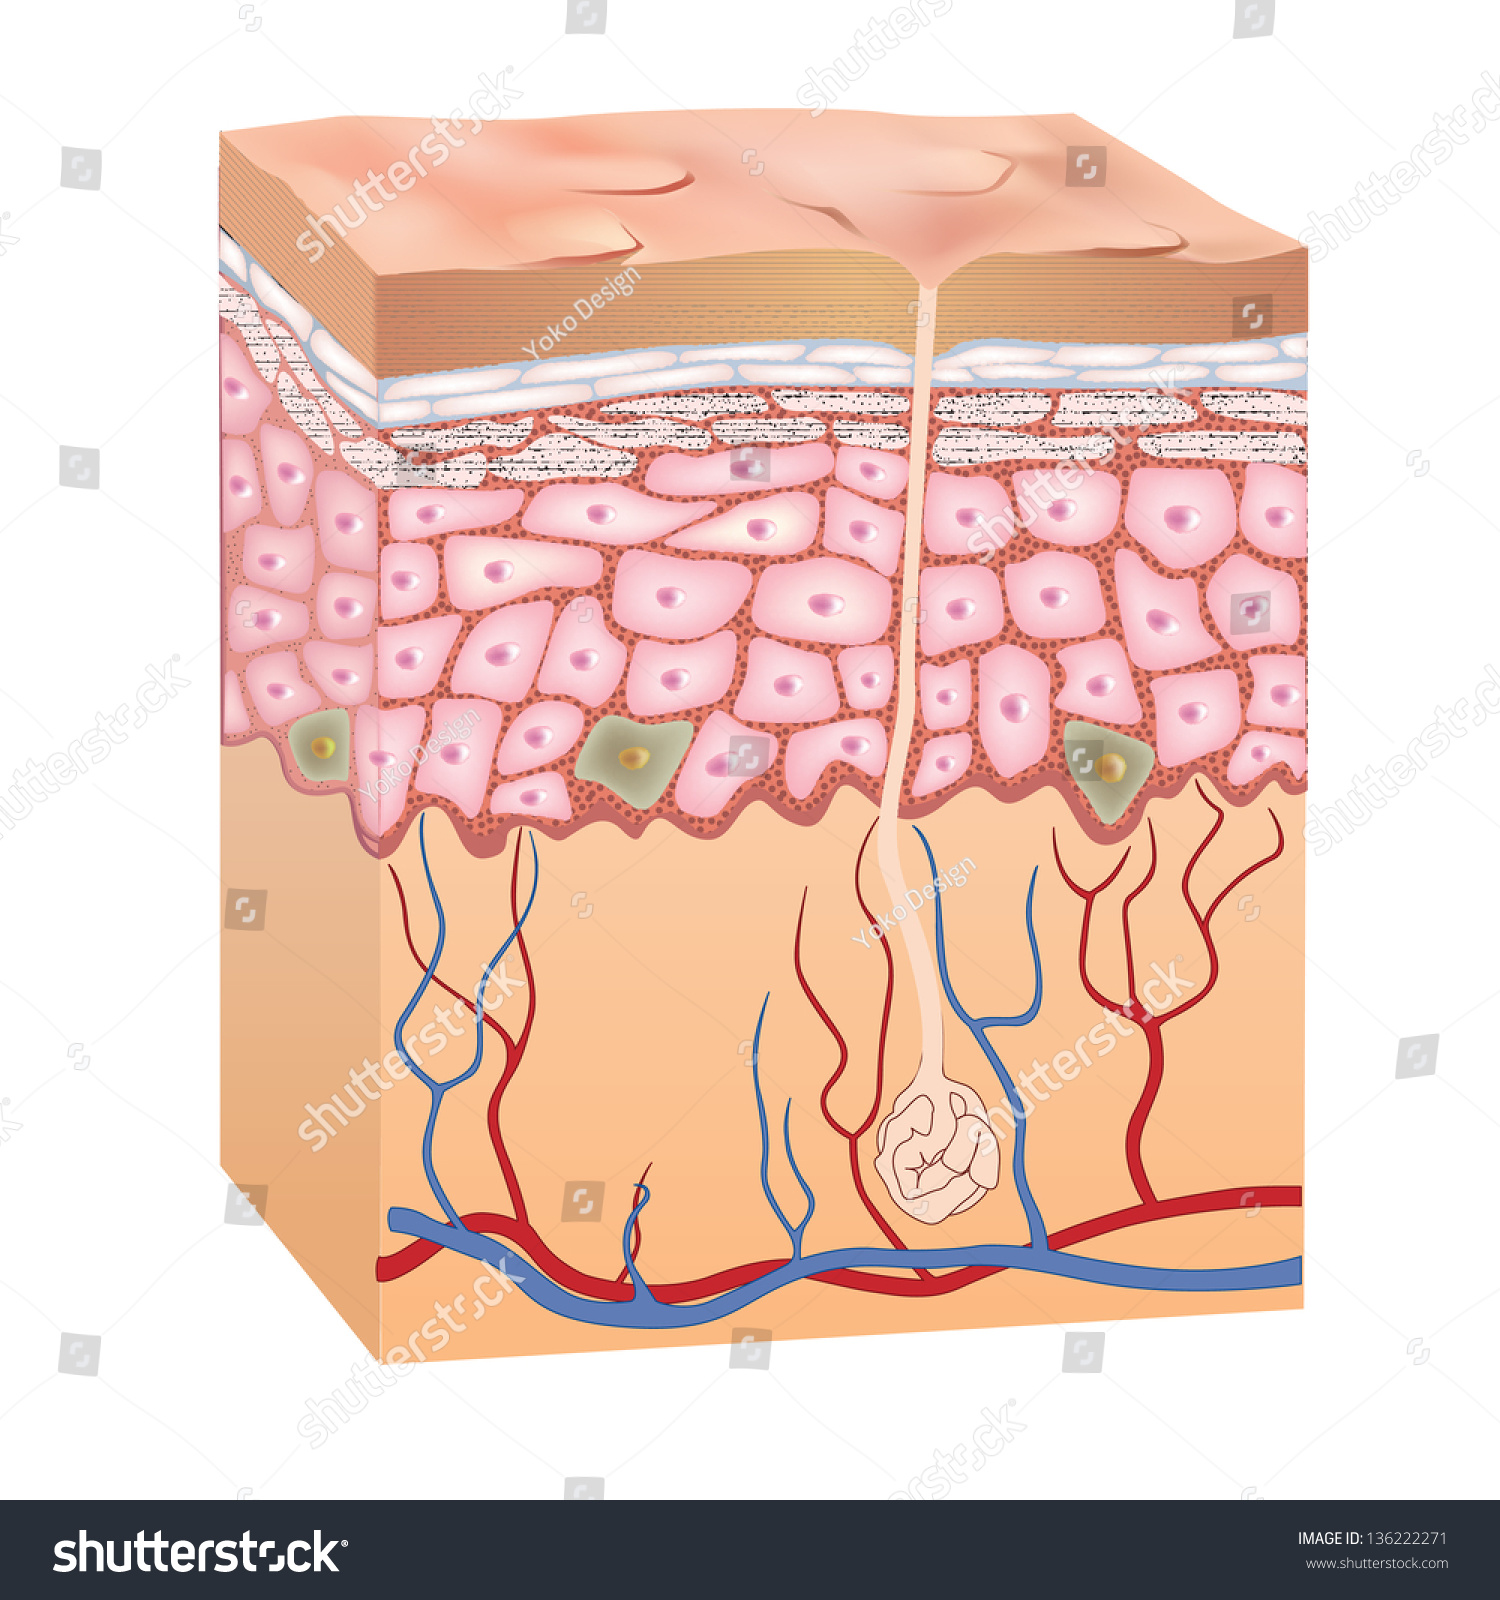 Human Skin Layer Model Worksheet